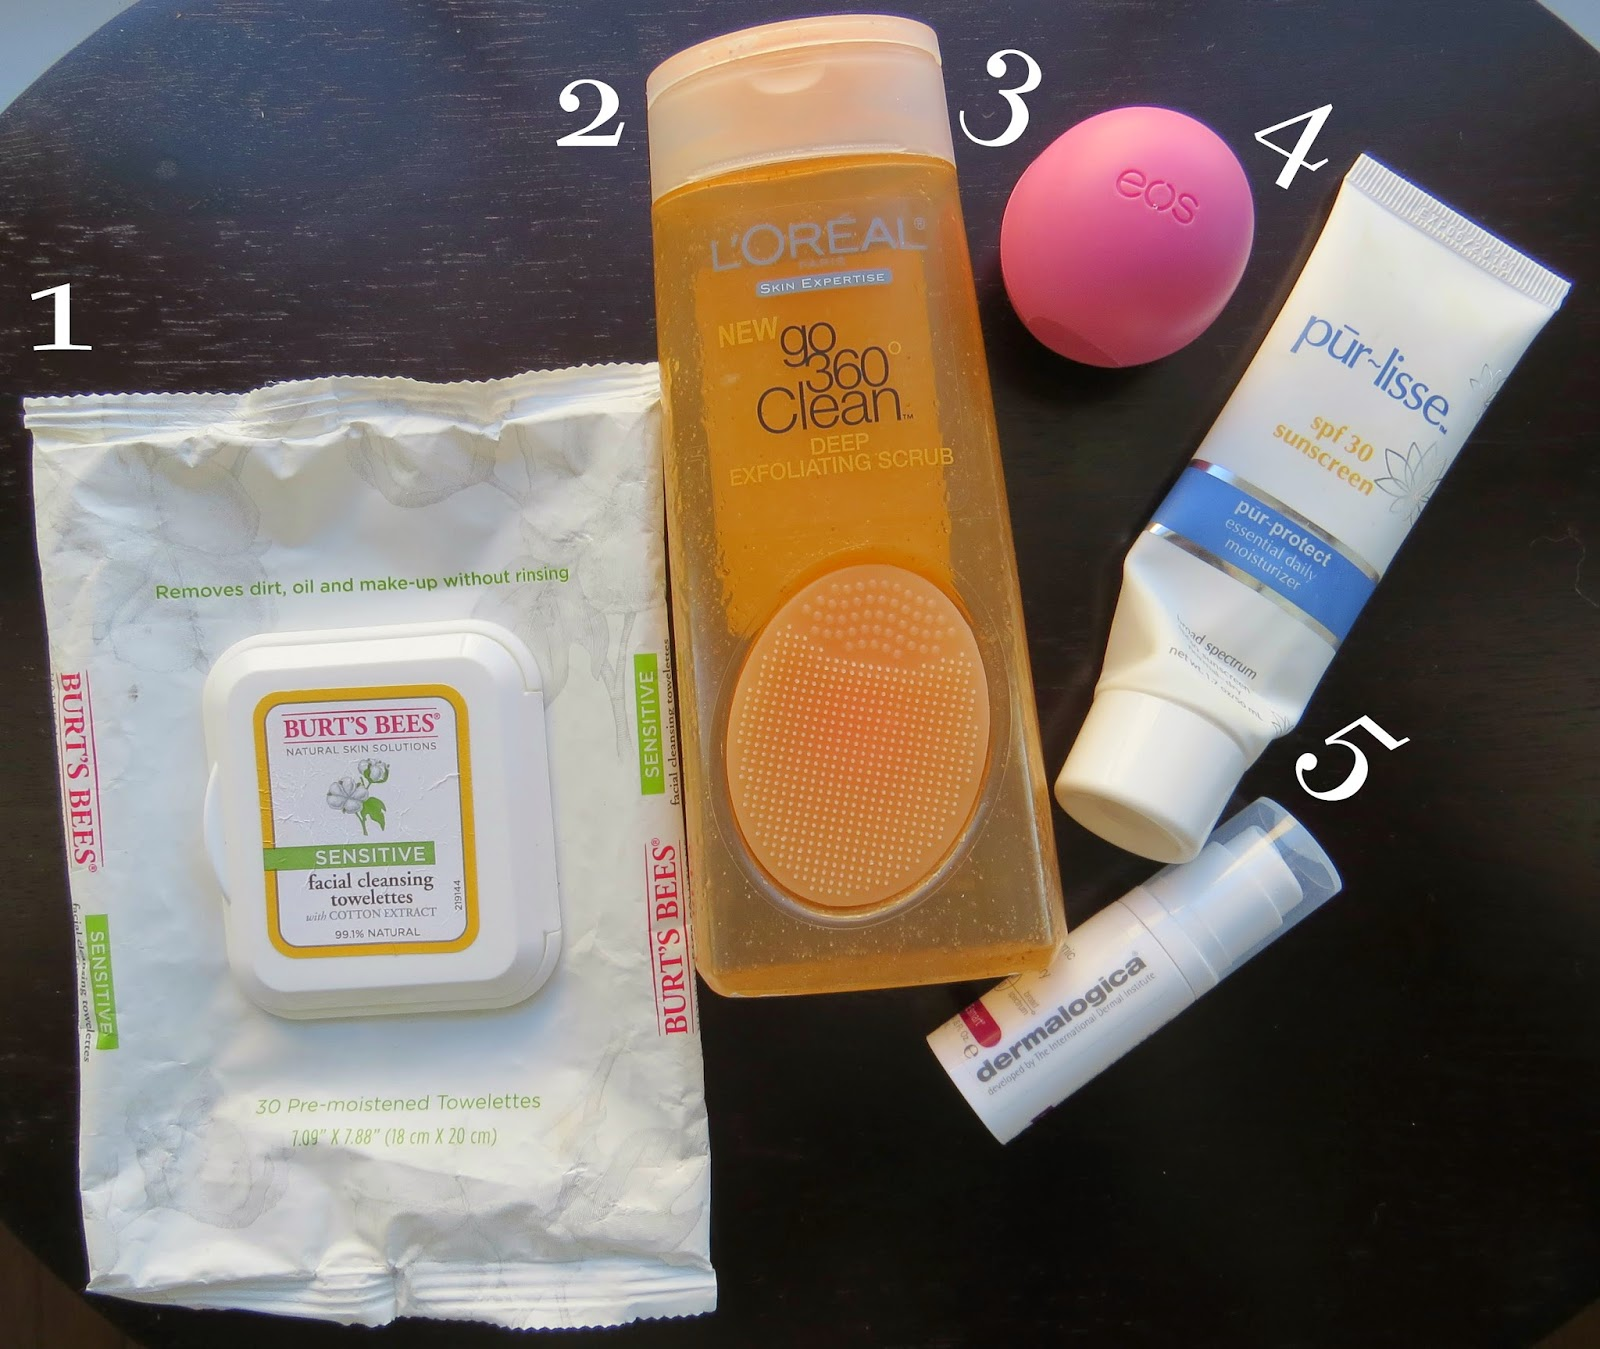 Burt's Bees Towelettes, Loreal Deep Exfoliating Scrub, EOS, Pur-lisse Sunscreen, Dermalogica